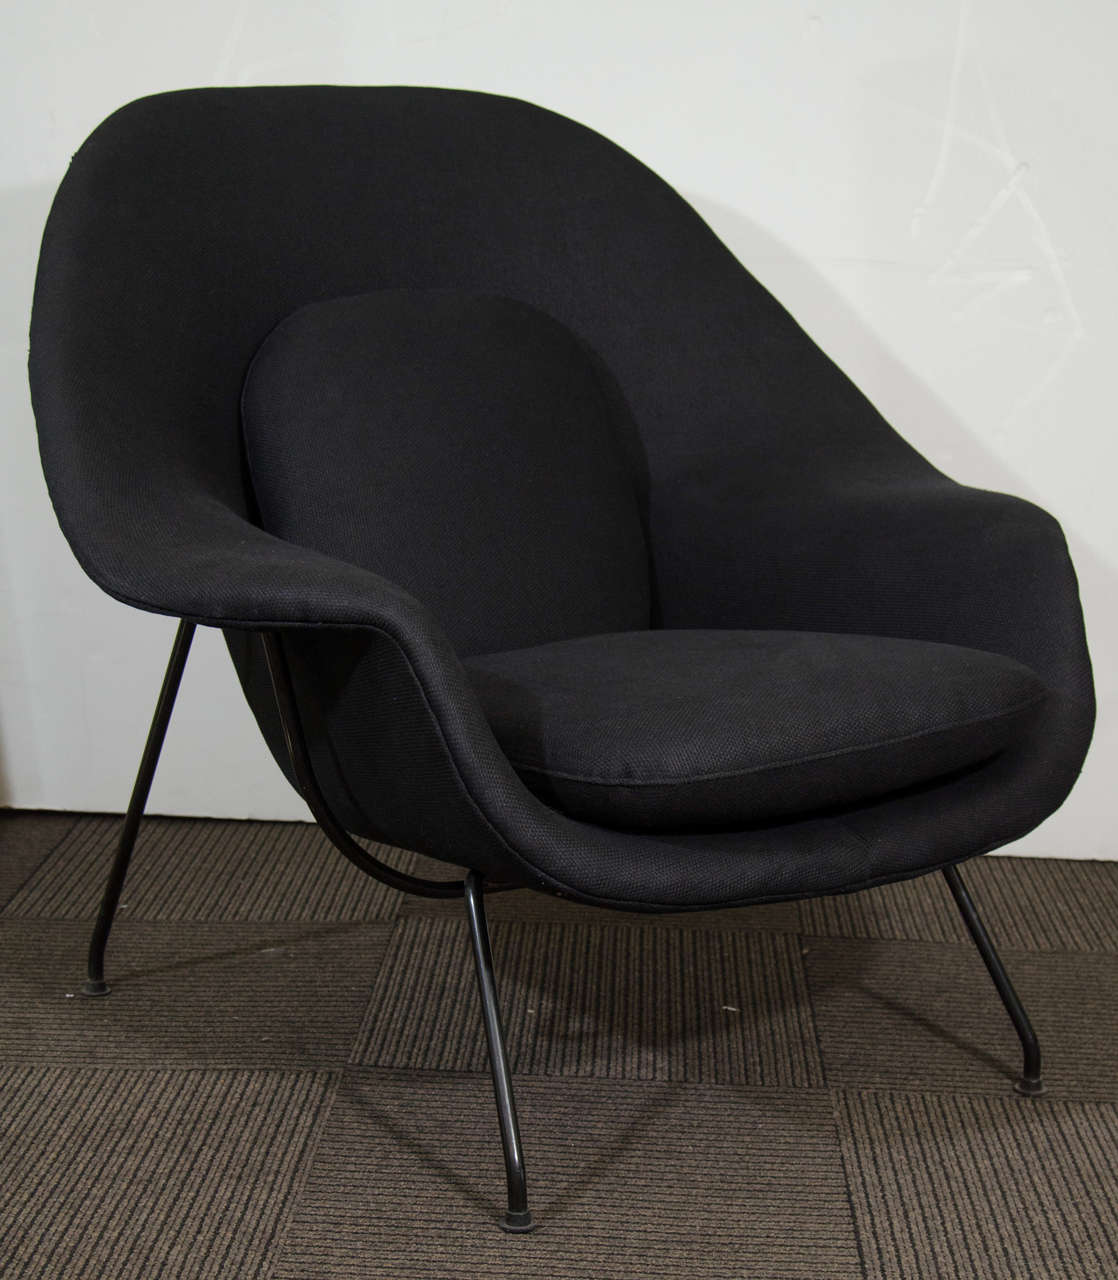 midcentury womb chair and ottoman by eero saarinen for knoll 3 - Womb Chair